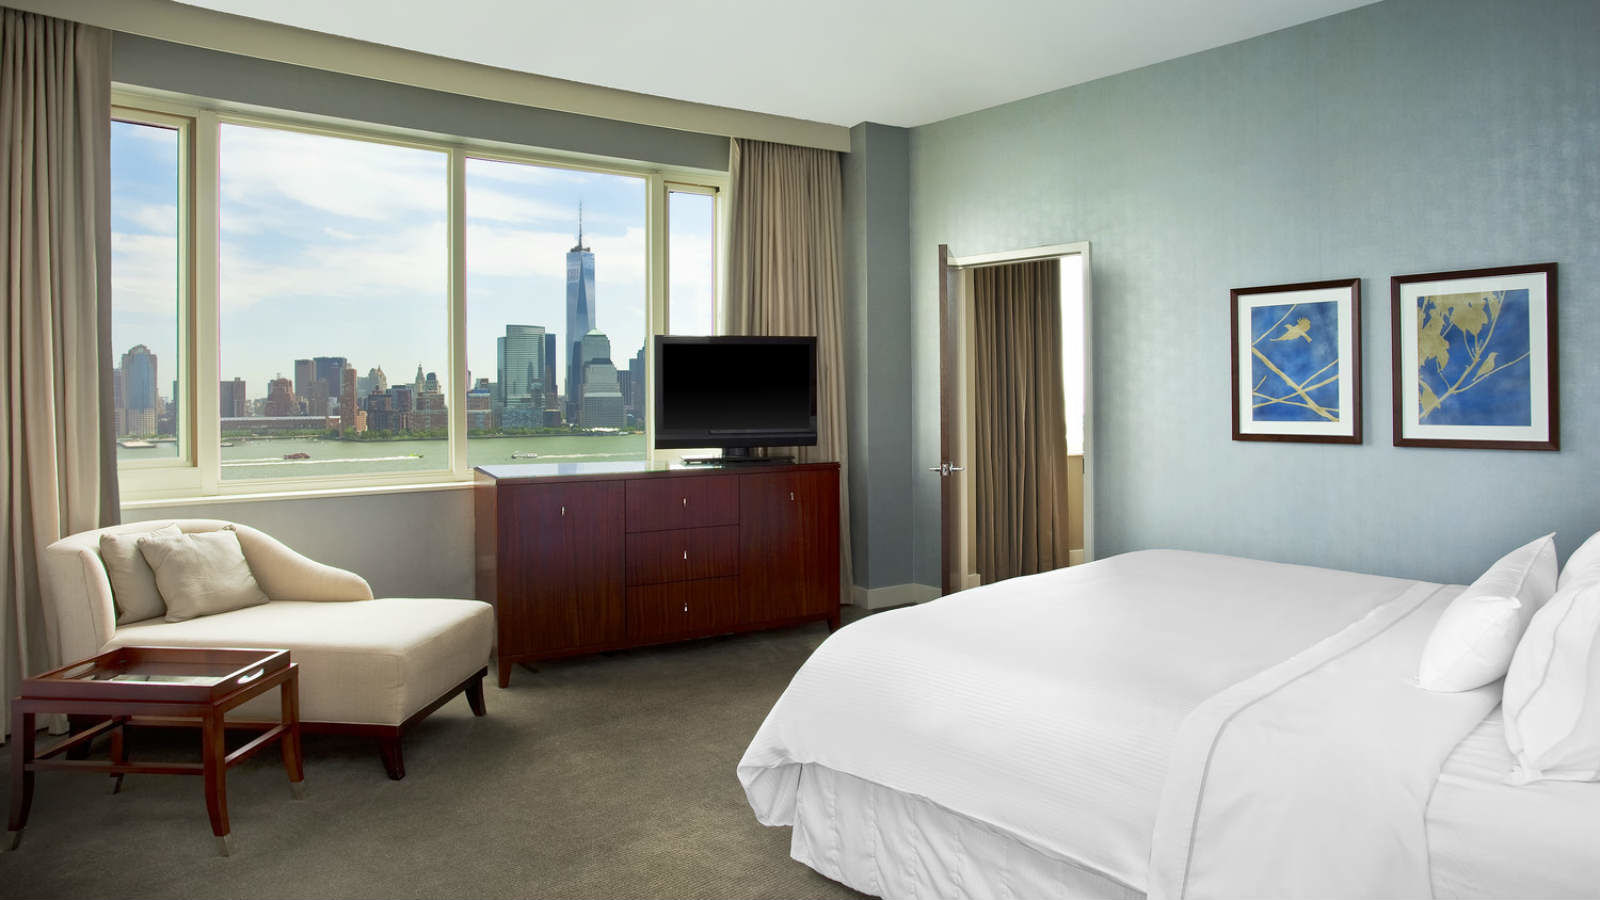 SPG Hot Escapes The Westin Jersey city